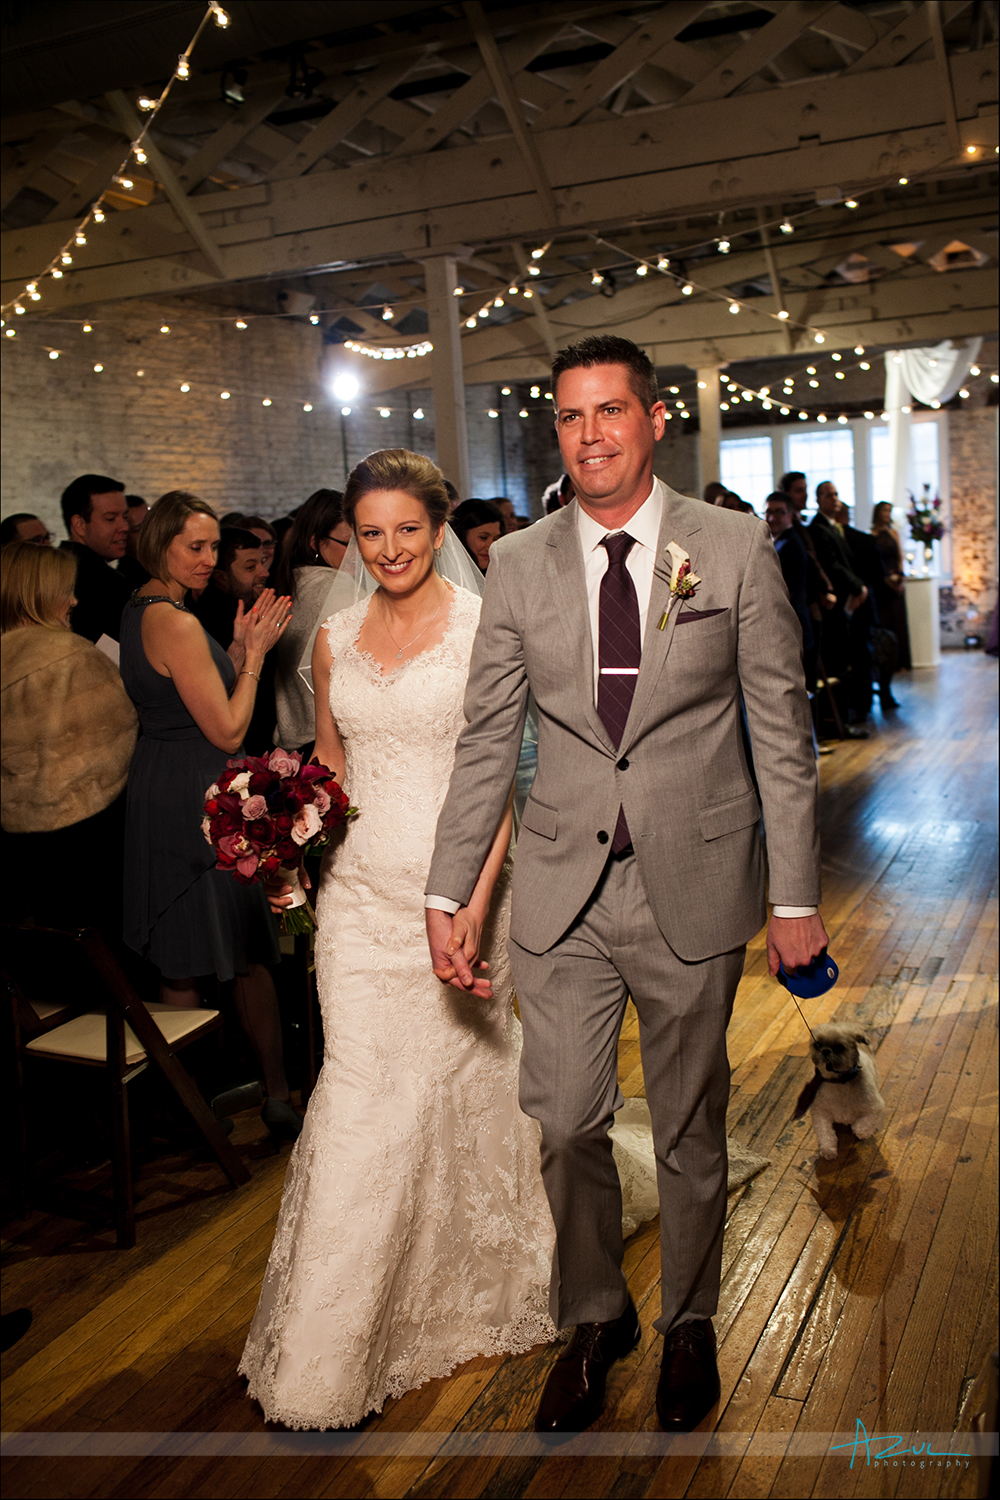 End of ceremony photograph of bride and groom at The Stockroom in Raleigh